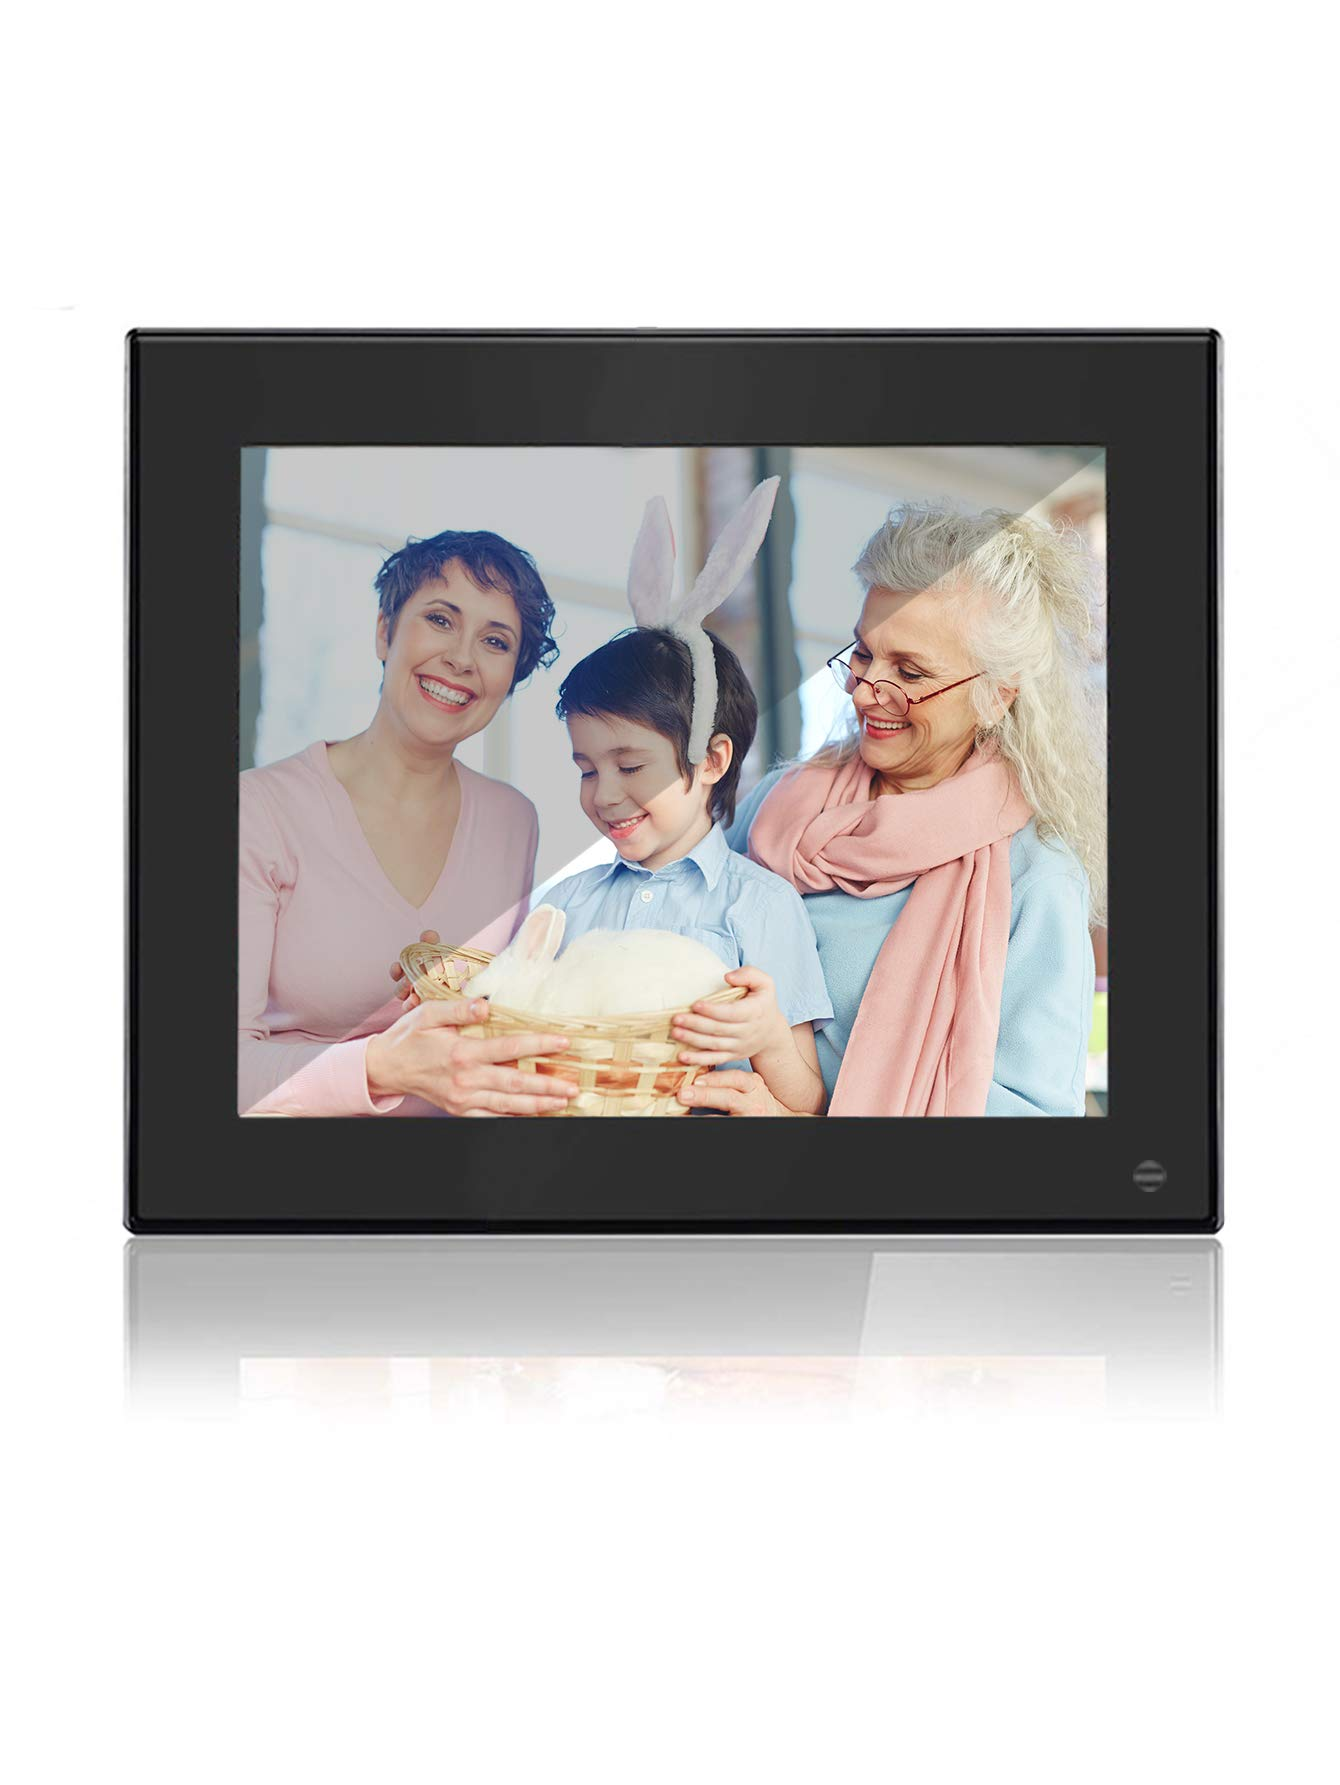 BSIMB Digital Photo Frame Digital Picture Frame 8 Inch 1024×768 Resolution Display with Calendar,Music,Video and USB,SD Card and Remote Control(M03 Black) by Bsimb (Image #1)